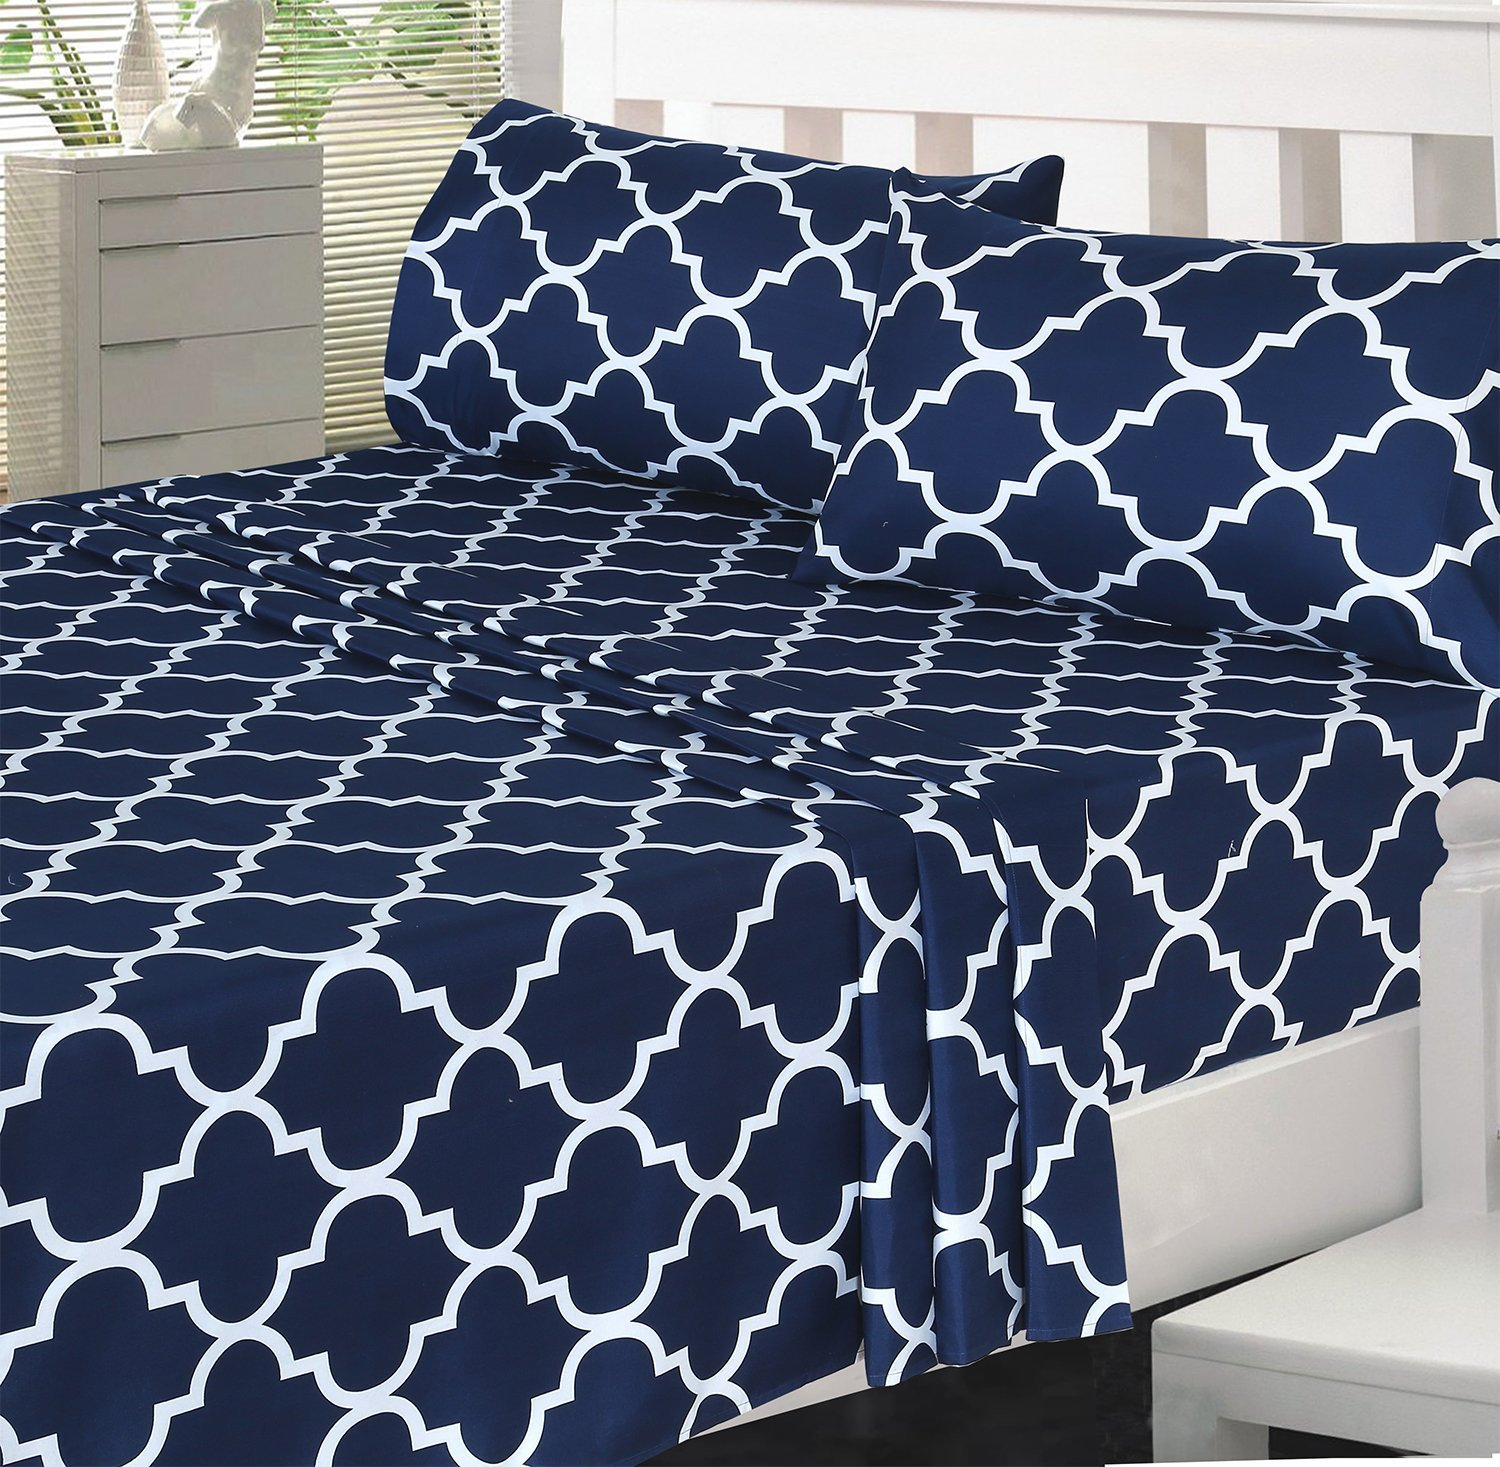 Utopia Bedding 3 Piece Bed Sheets Set (Twin, Navy) - 1 Flat Sheet 1 Fitted Sheet and 1 Pillow Case - Hotel Quality Brushed Velvety Microfiber - Luxurious & Extremely Durable by Utopia Bedding (Image #5)